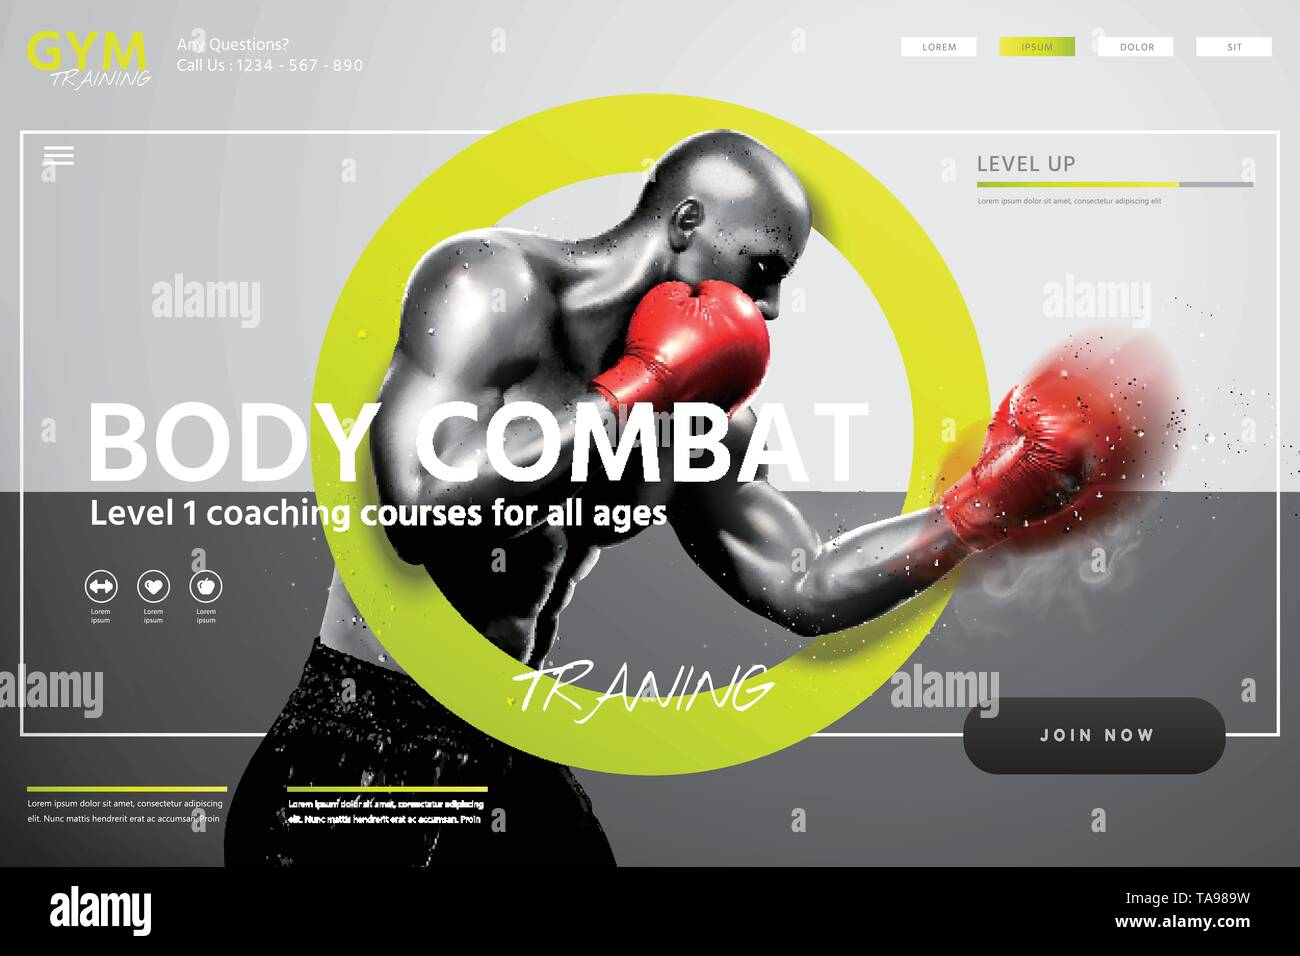 Boxing lessons website design with strong boxer throwing hook in 3d illustration, grey tone - Stock Image